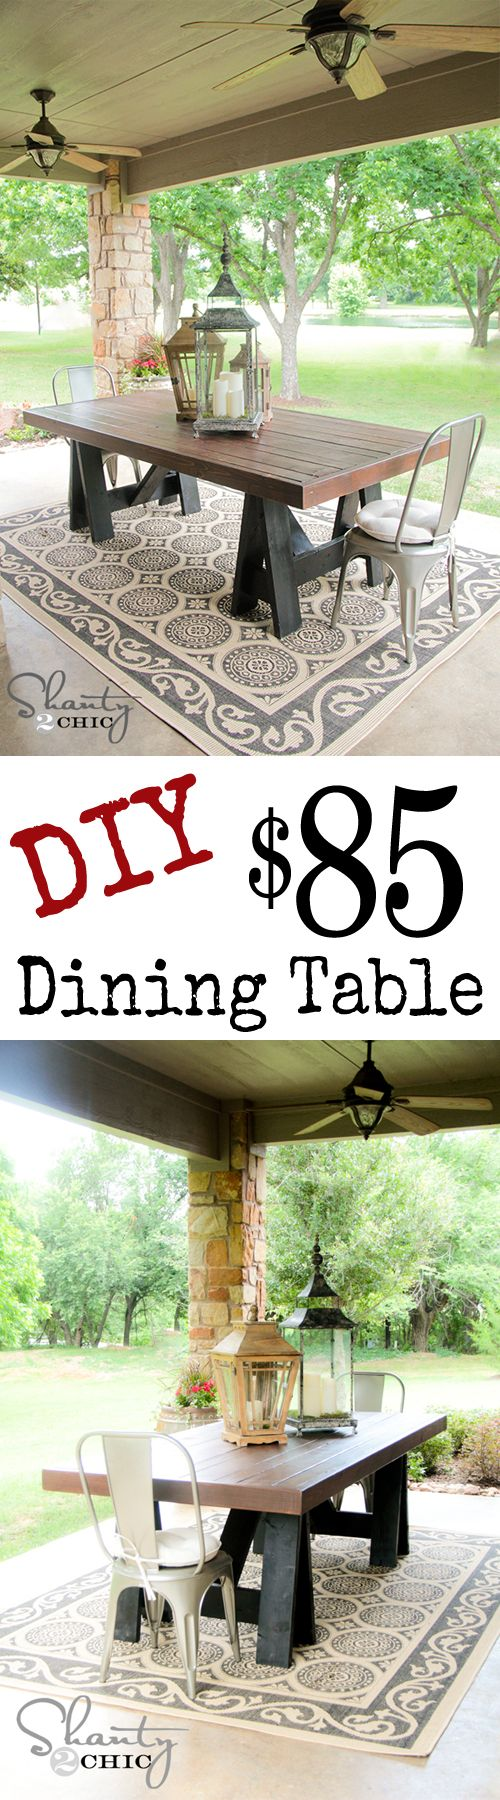 DIY Pottery Barn Dining Table!  I don't like the legs, but those could be done differently.